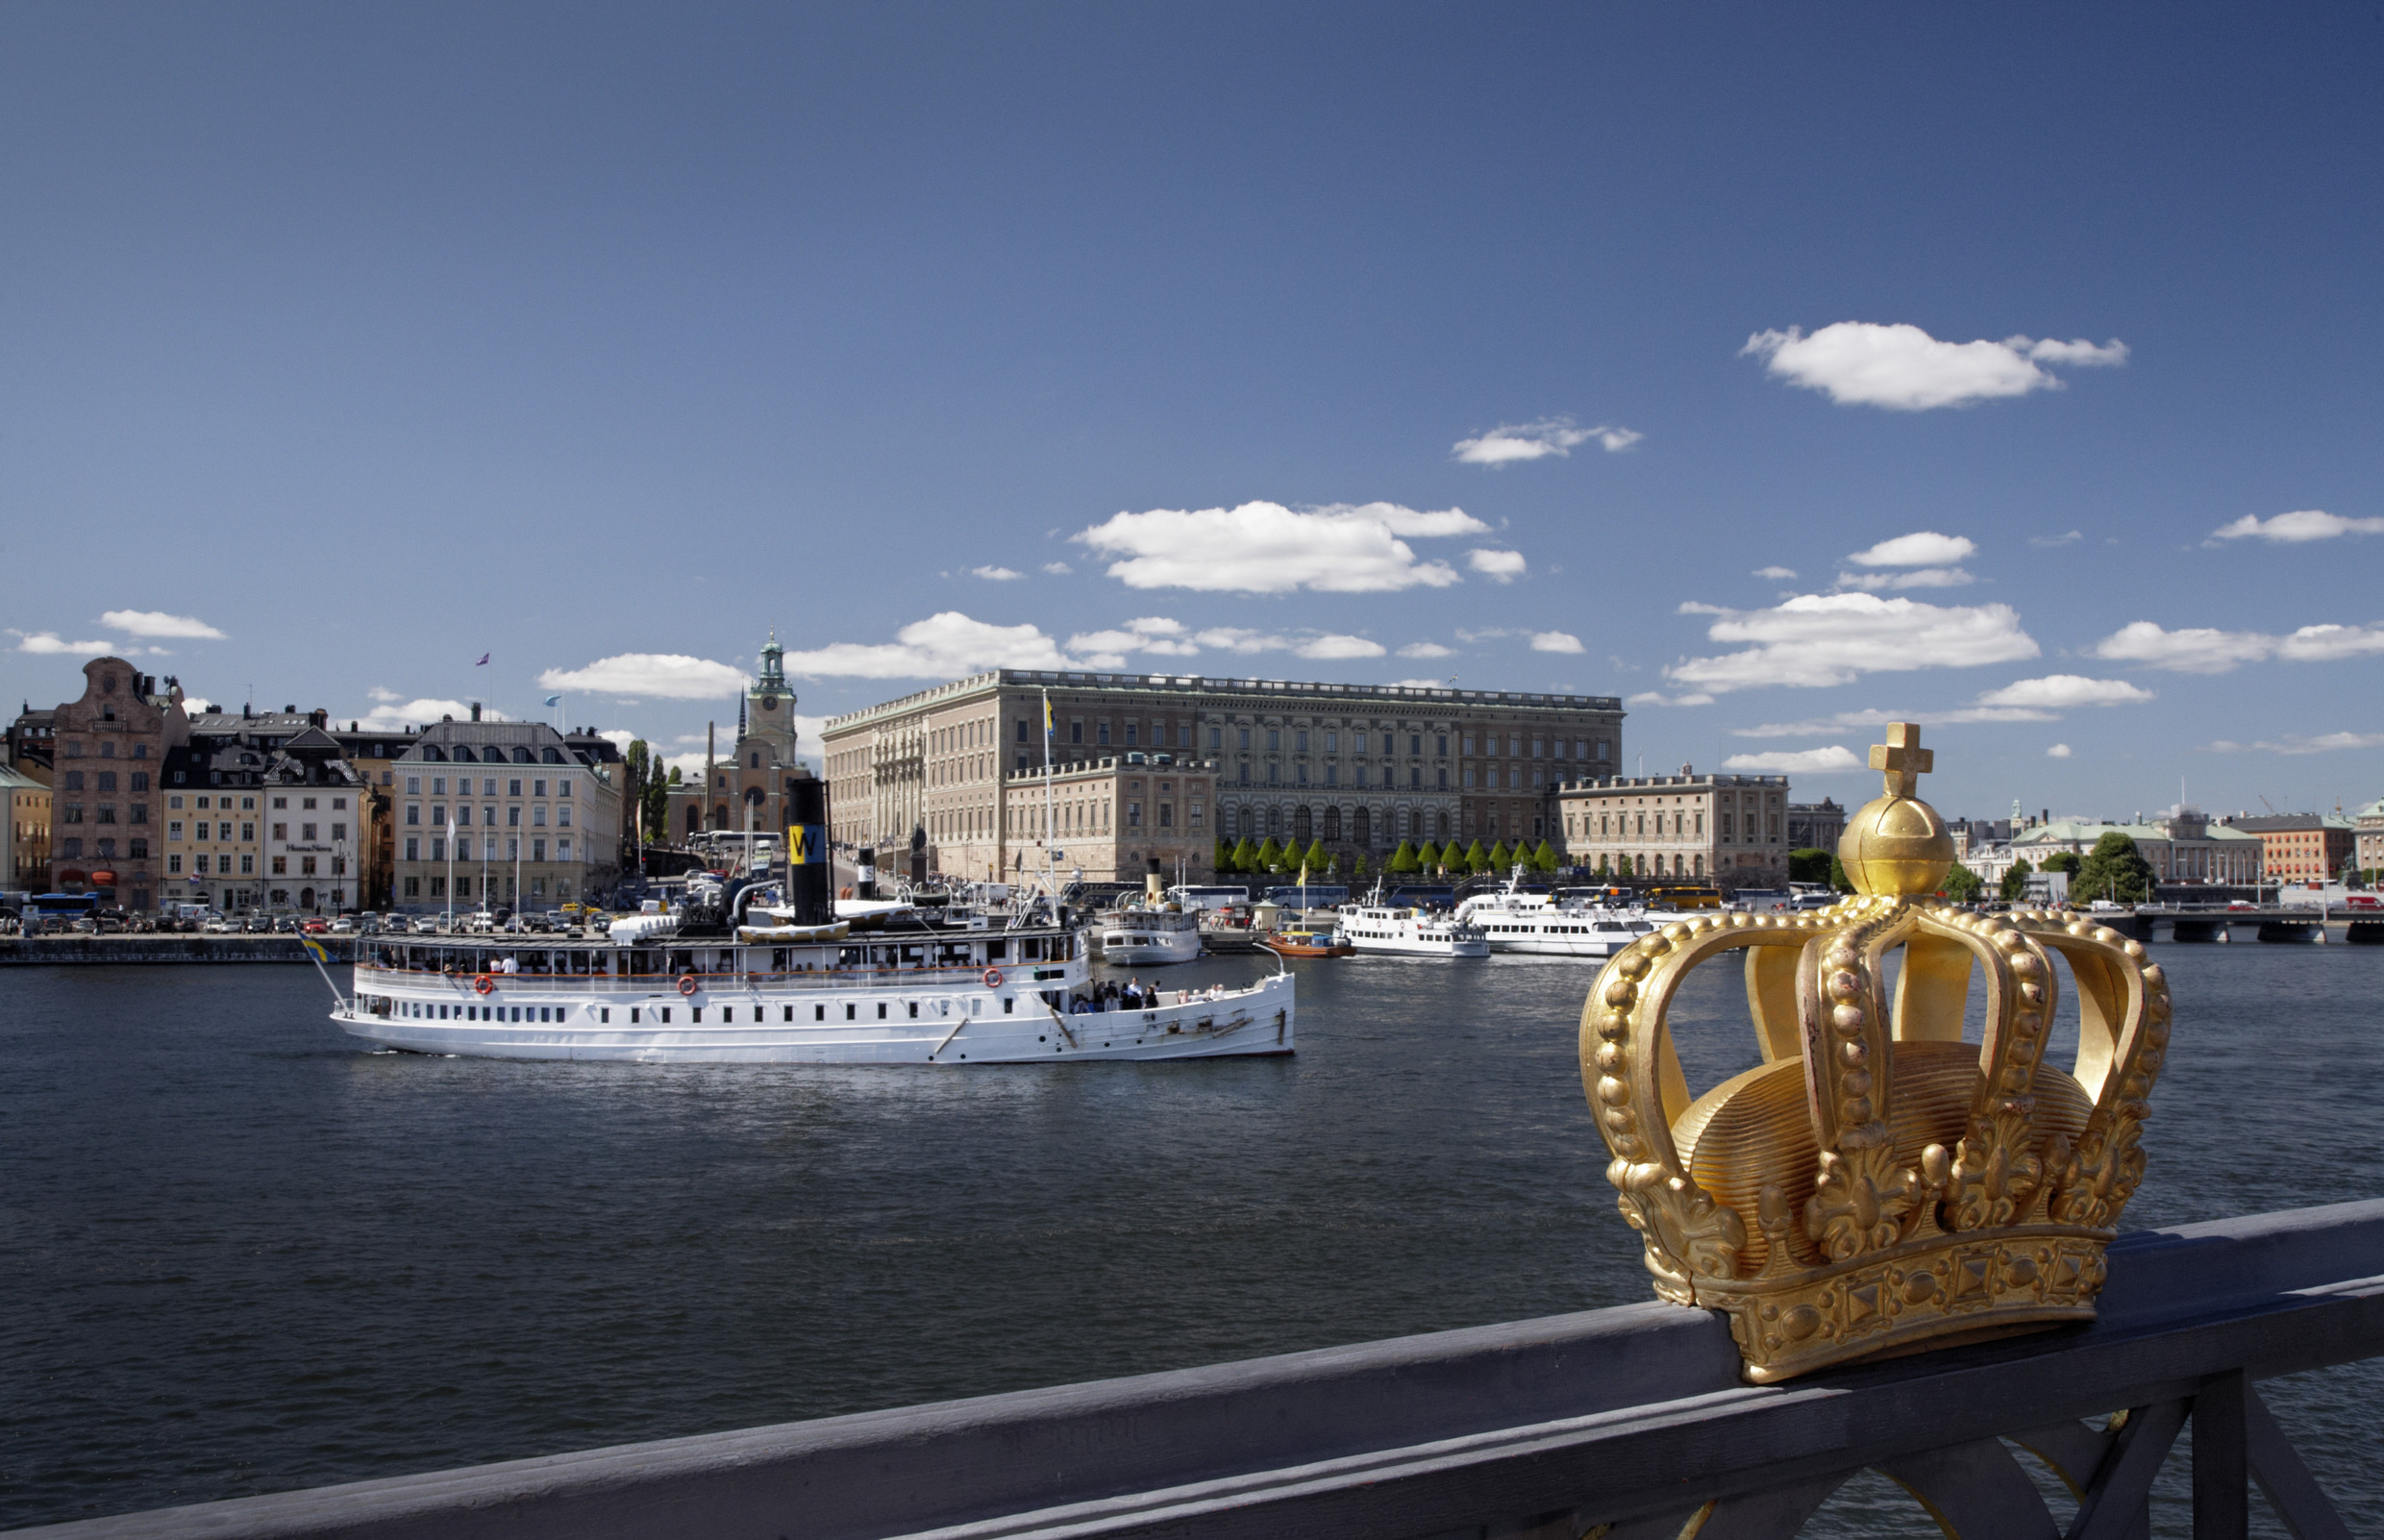 ola_ericson-the_royal_palace-722